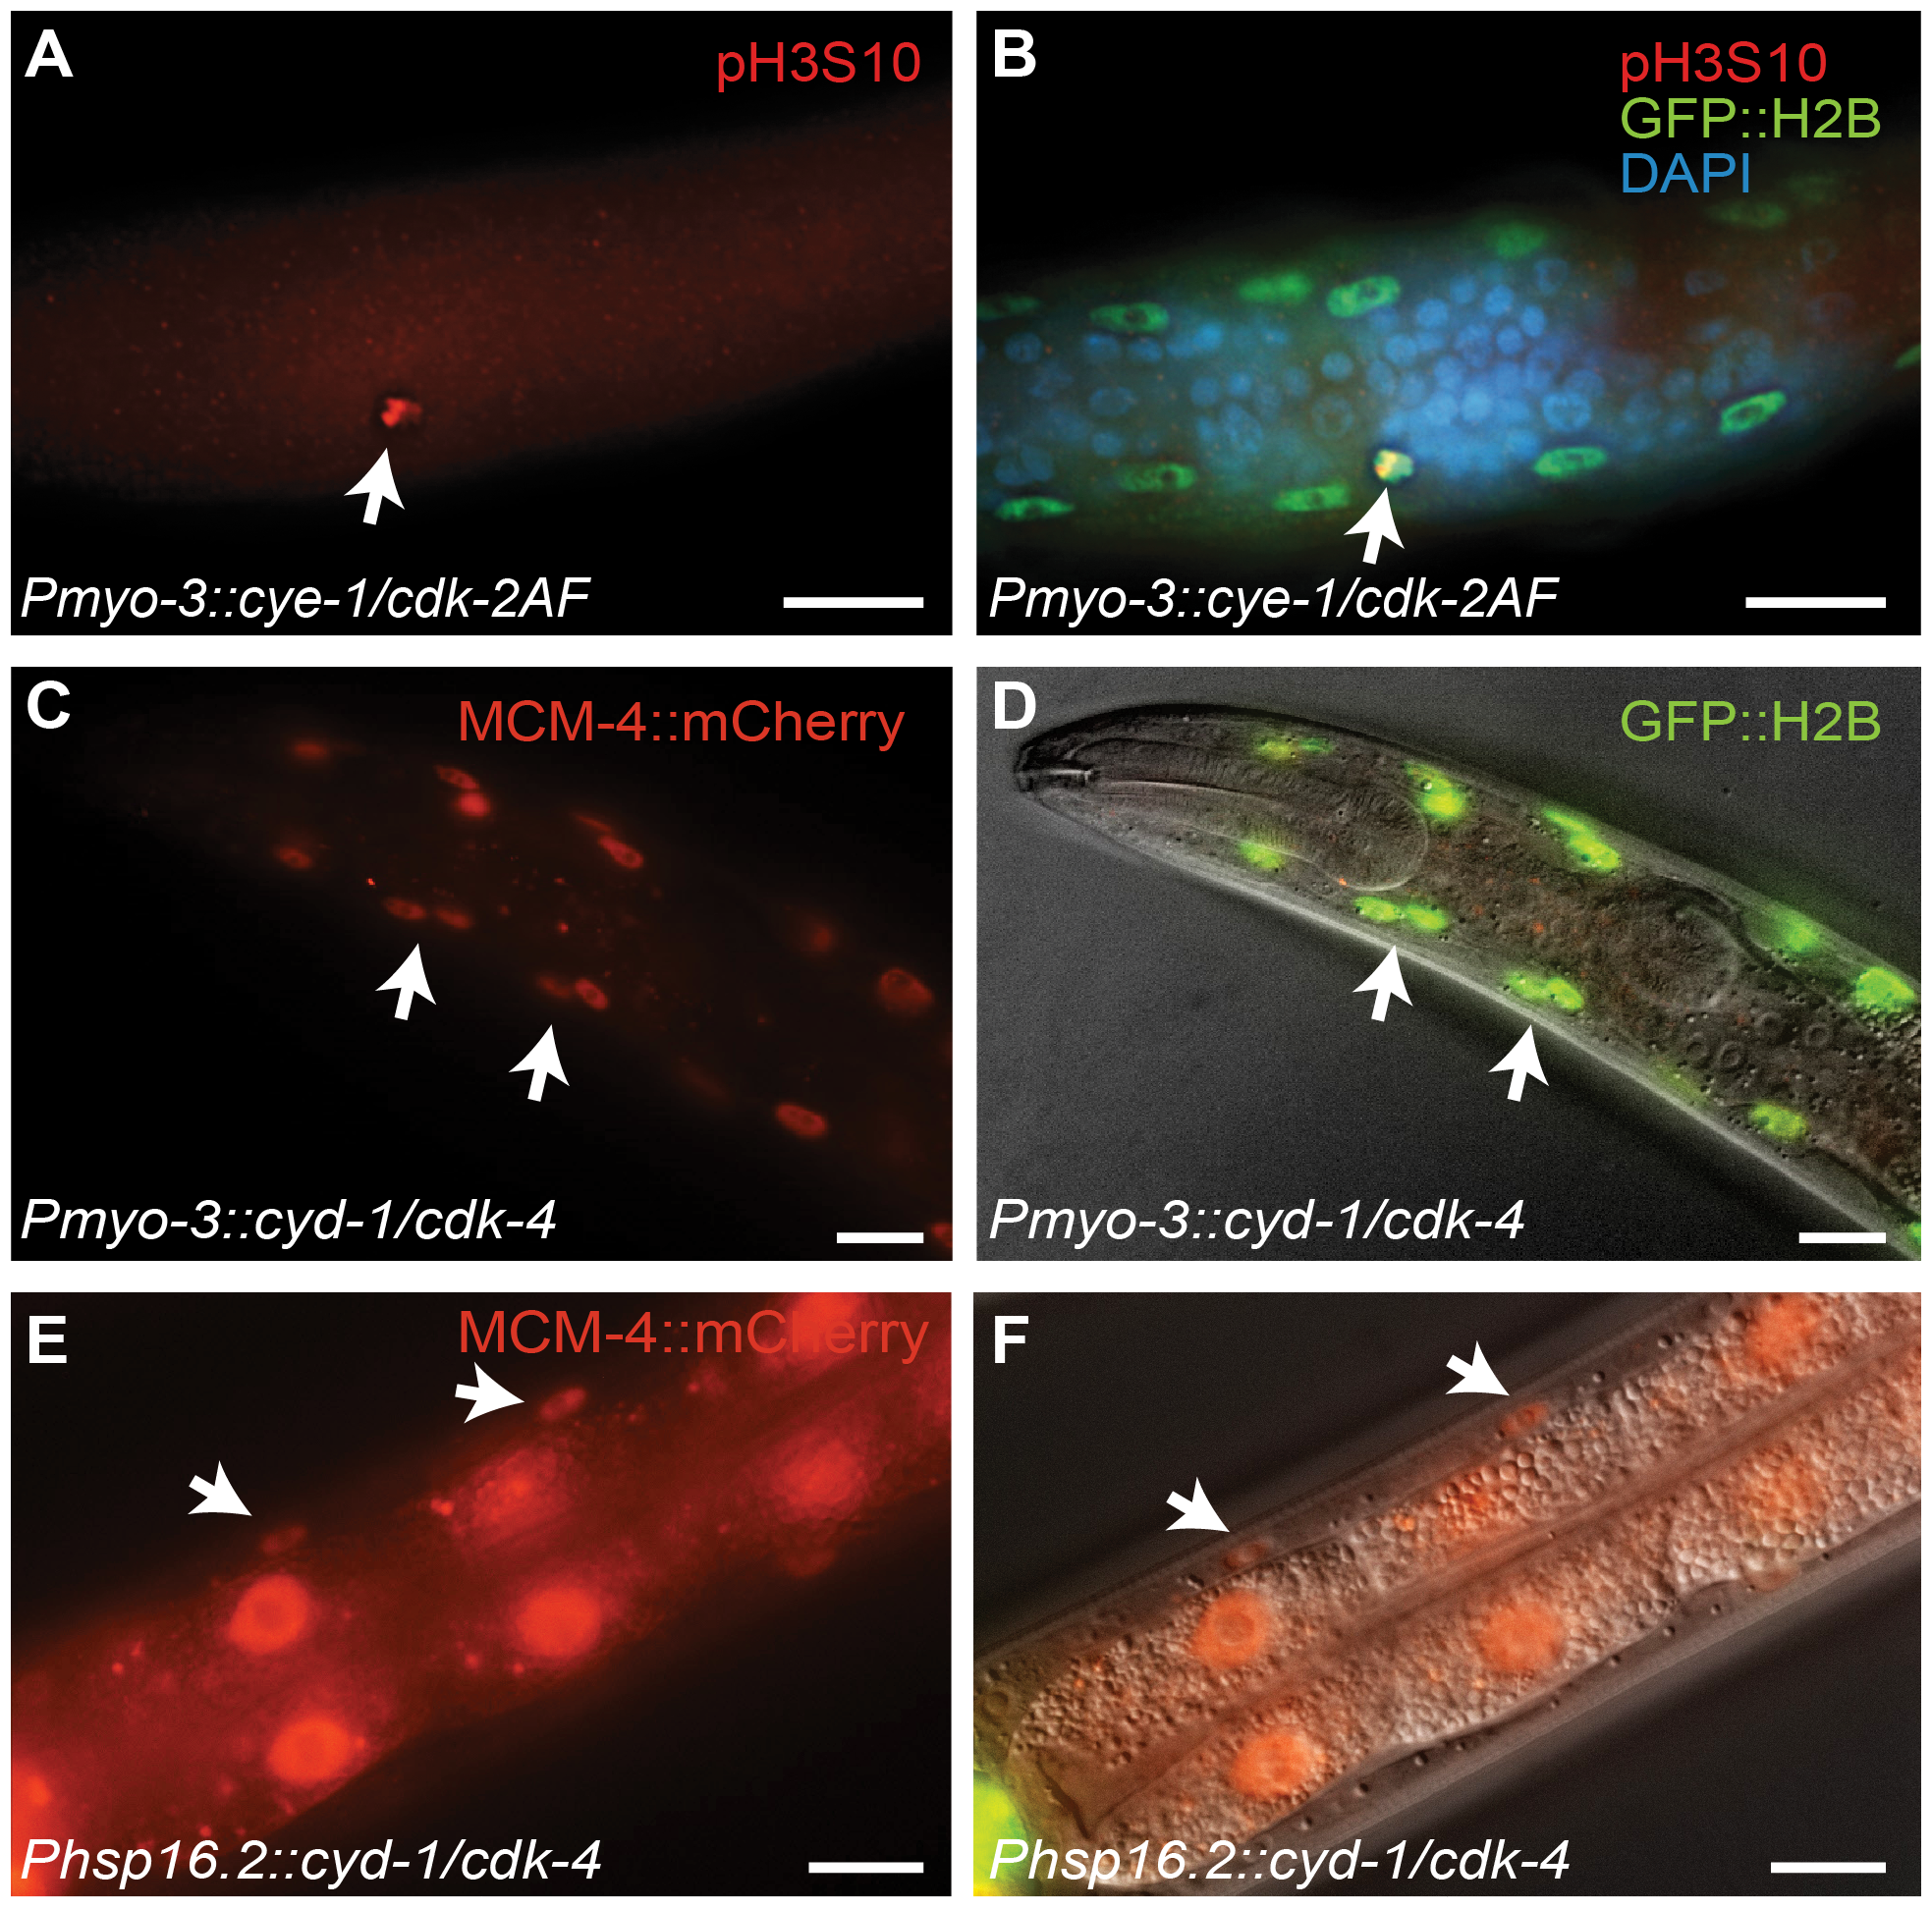 G1 Cyclin/CDK expression induces S and M phase markers in larval muscle.